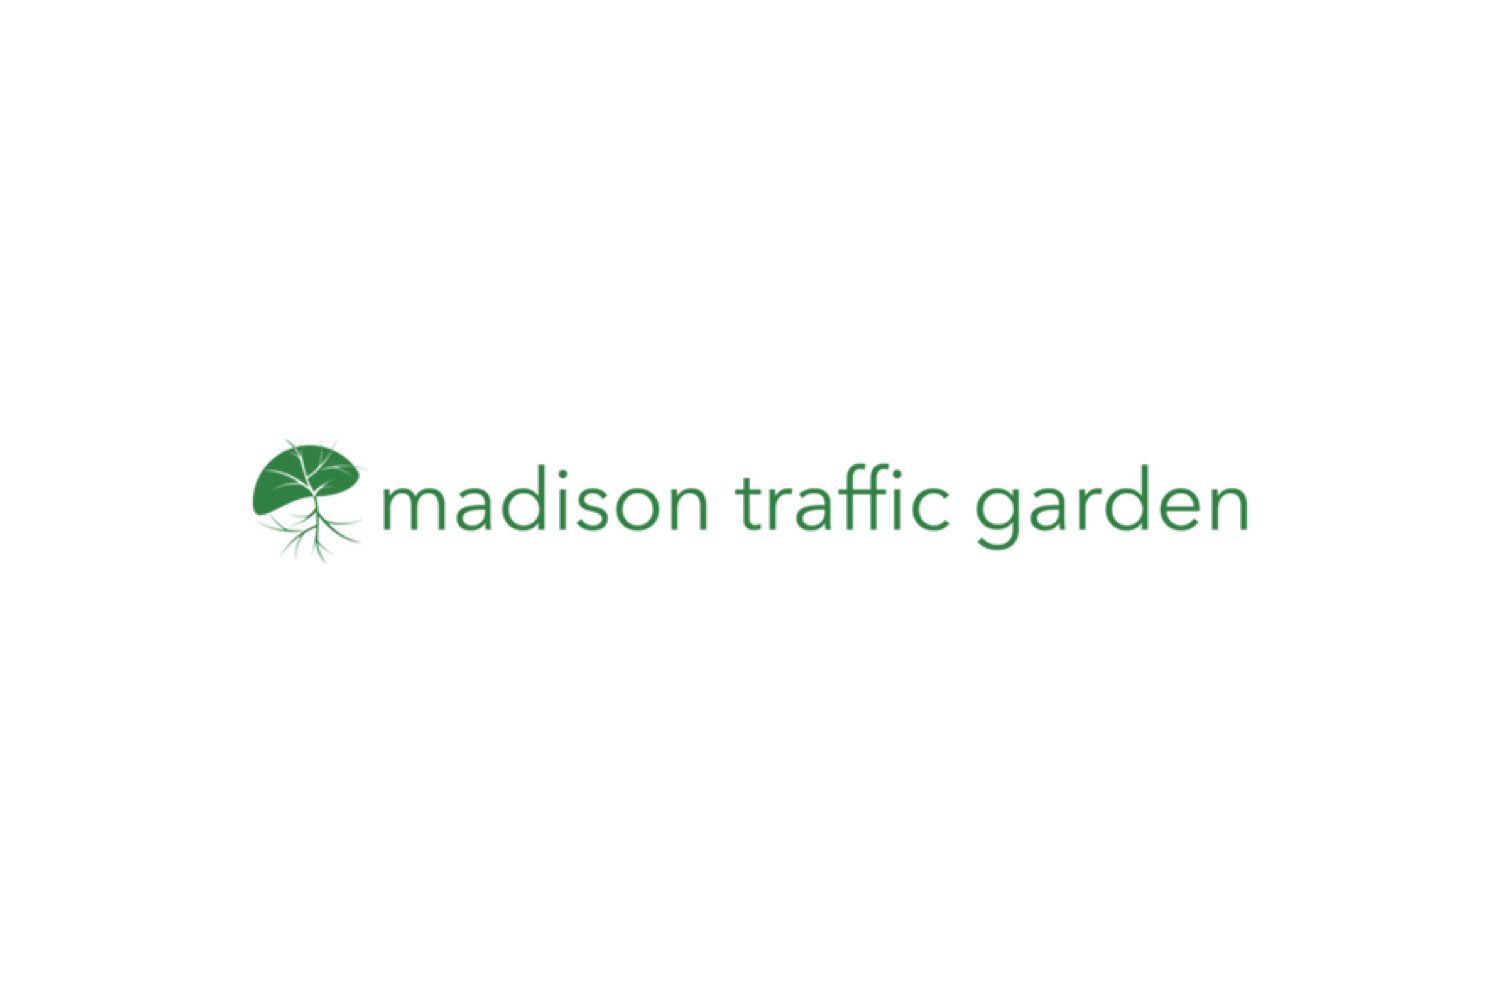 madison-traffic-garden-logo.png